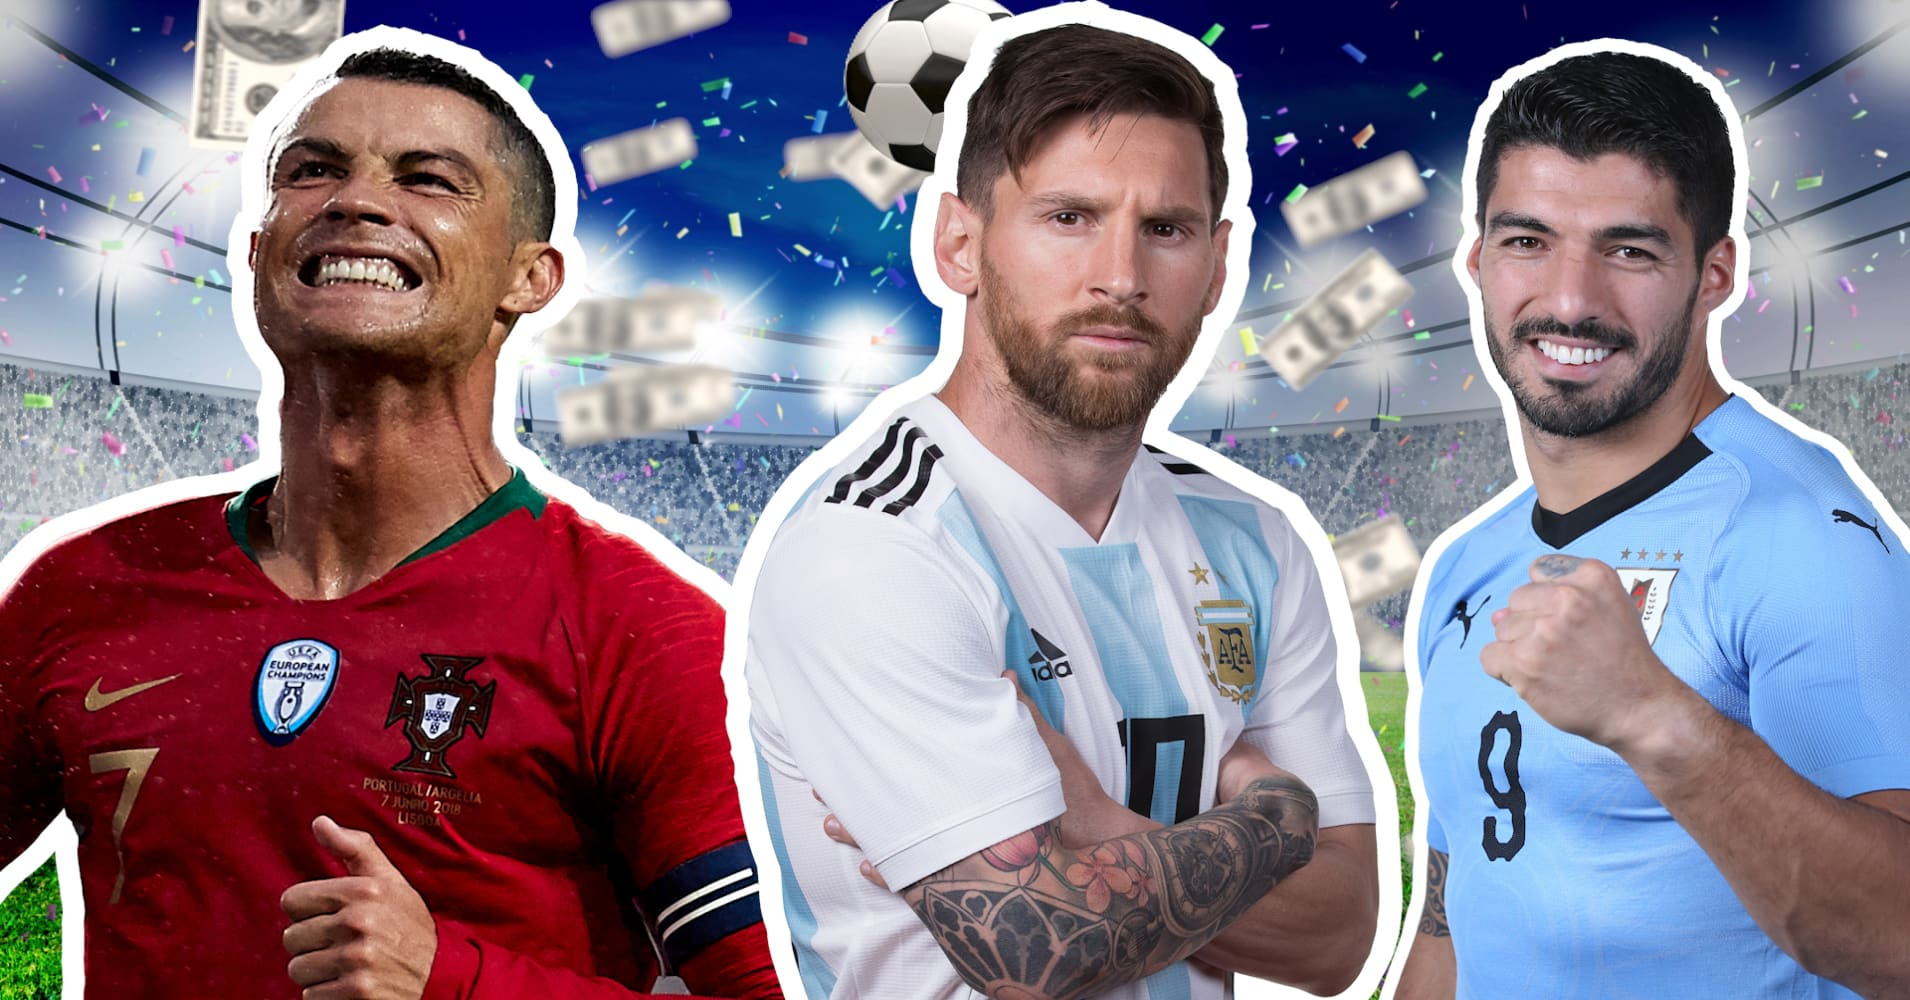 These are the 8 highest-paid soccer players in the world